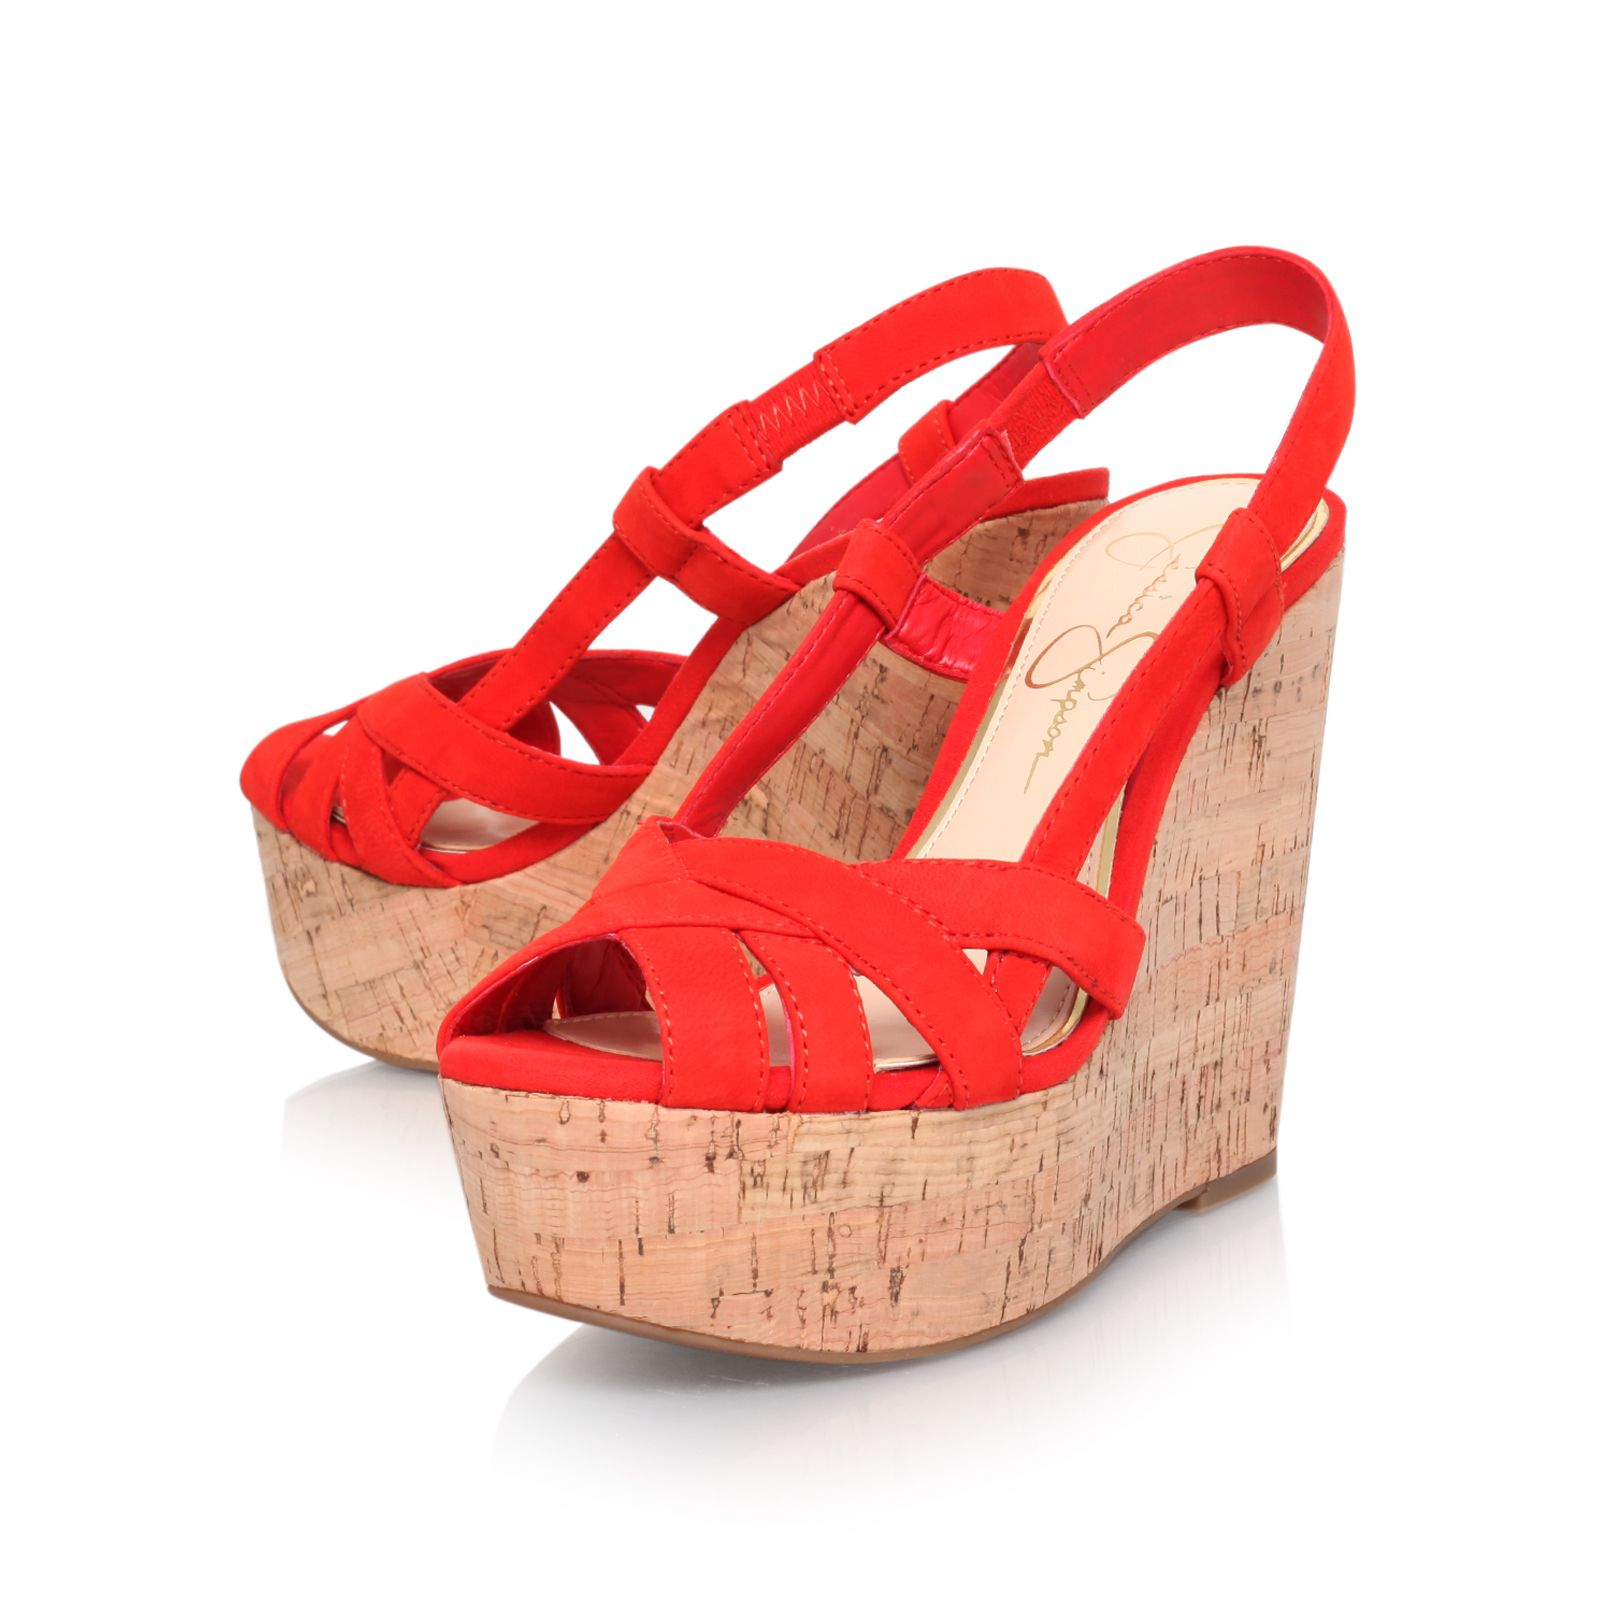 Westt high heel wedge sandals